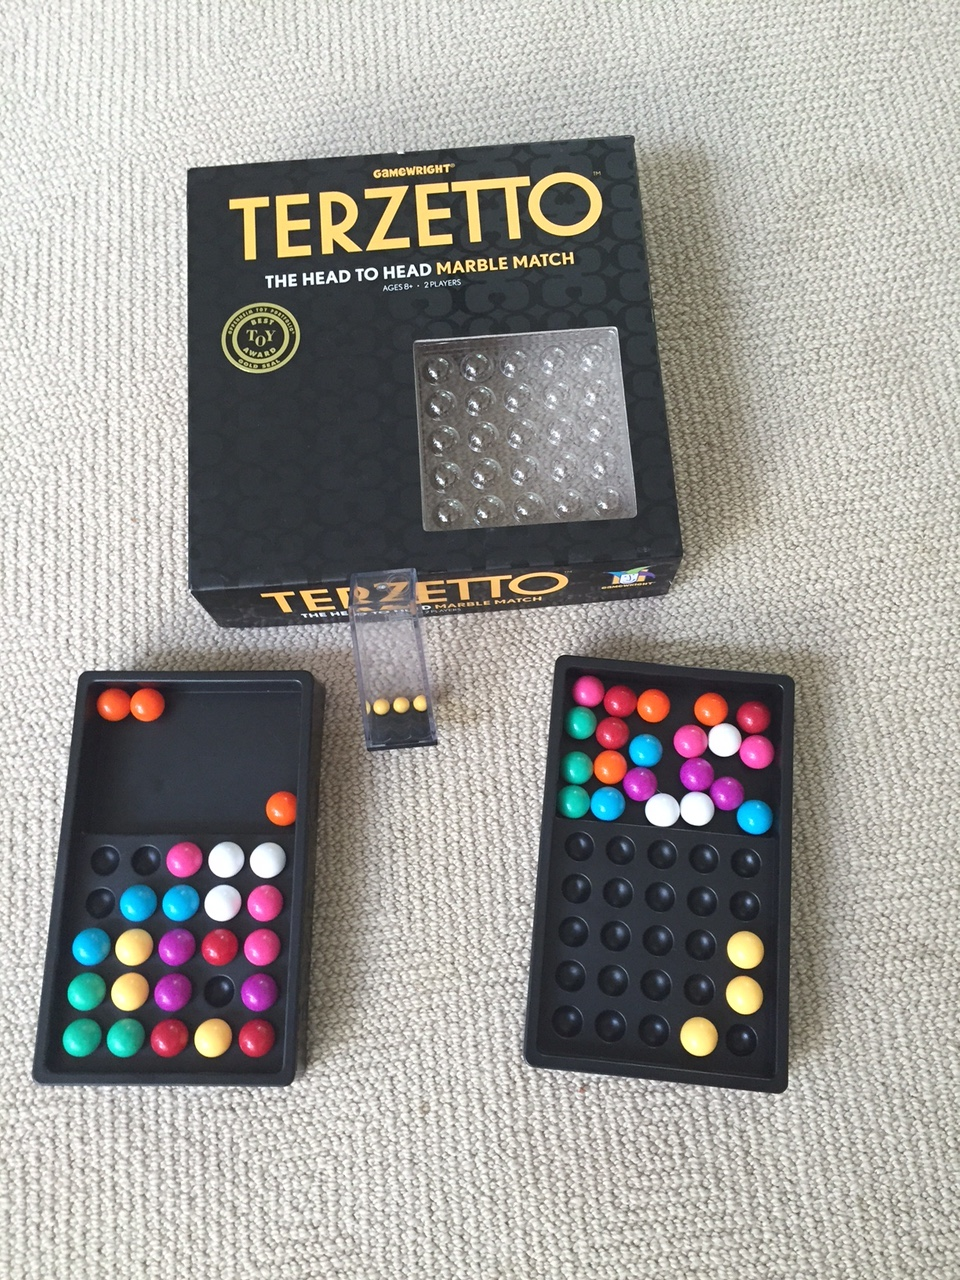 Terzetto from Gamewright - YouTube